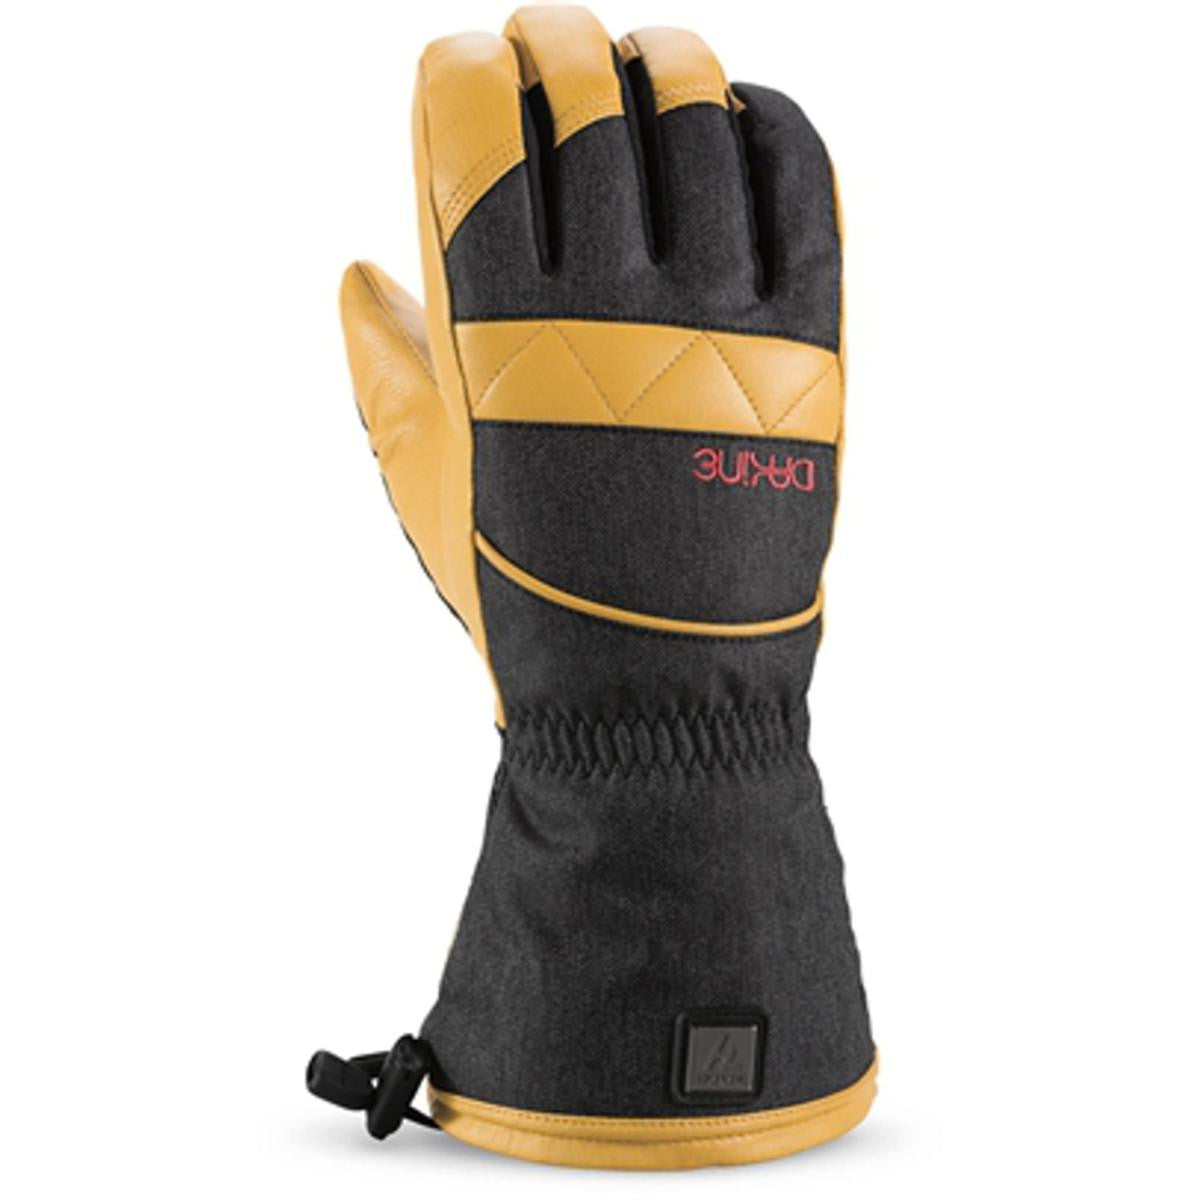 Dakine Topaz Glove Women's Multiple Colors and Sizes NEW Women's